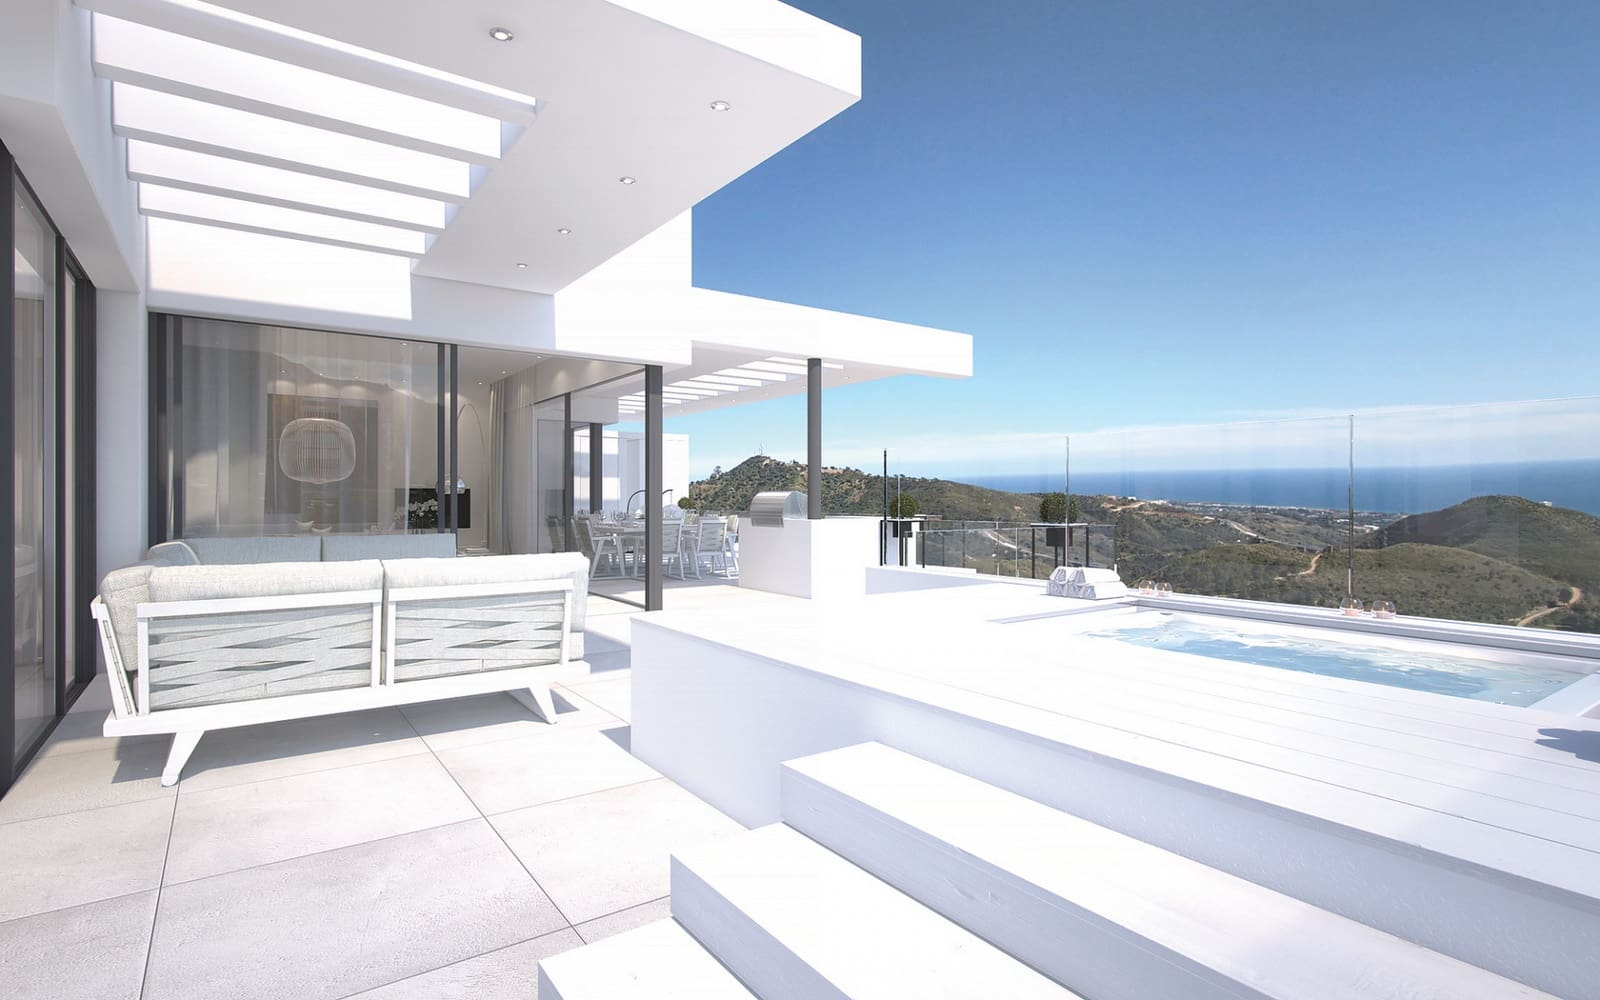 3 bedroom Penthouse for sale in Marbella with pool garage - € 765,000 (Ref: 4668860)